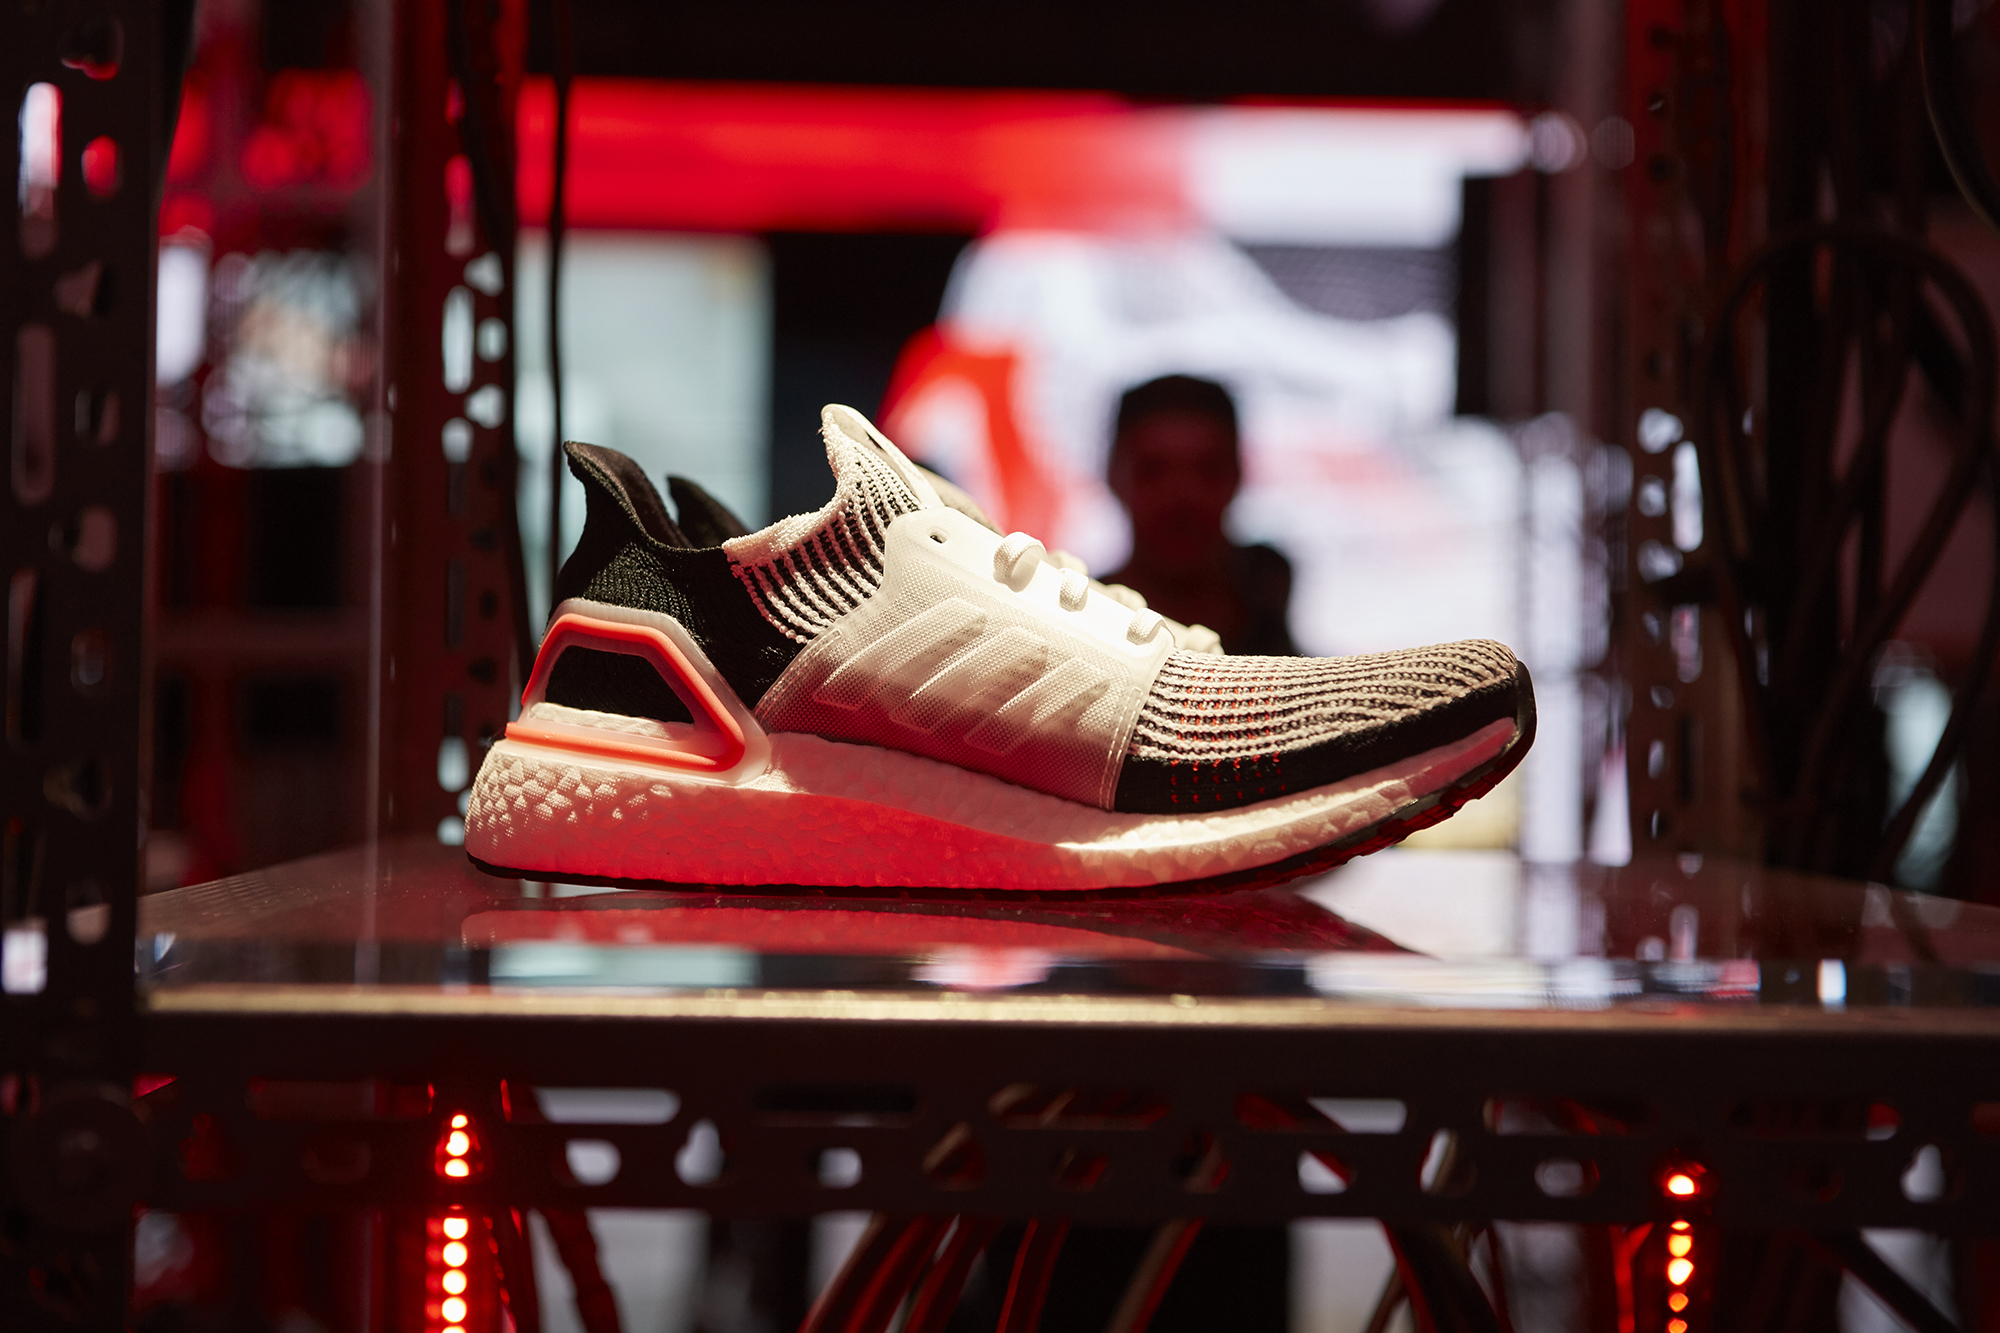 adidas Ultraboost 19 – Paris Event Recap